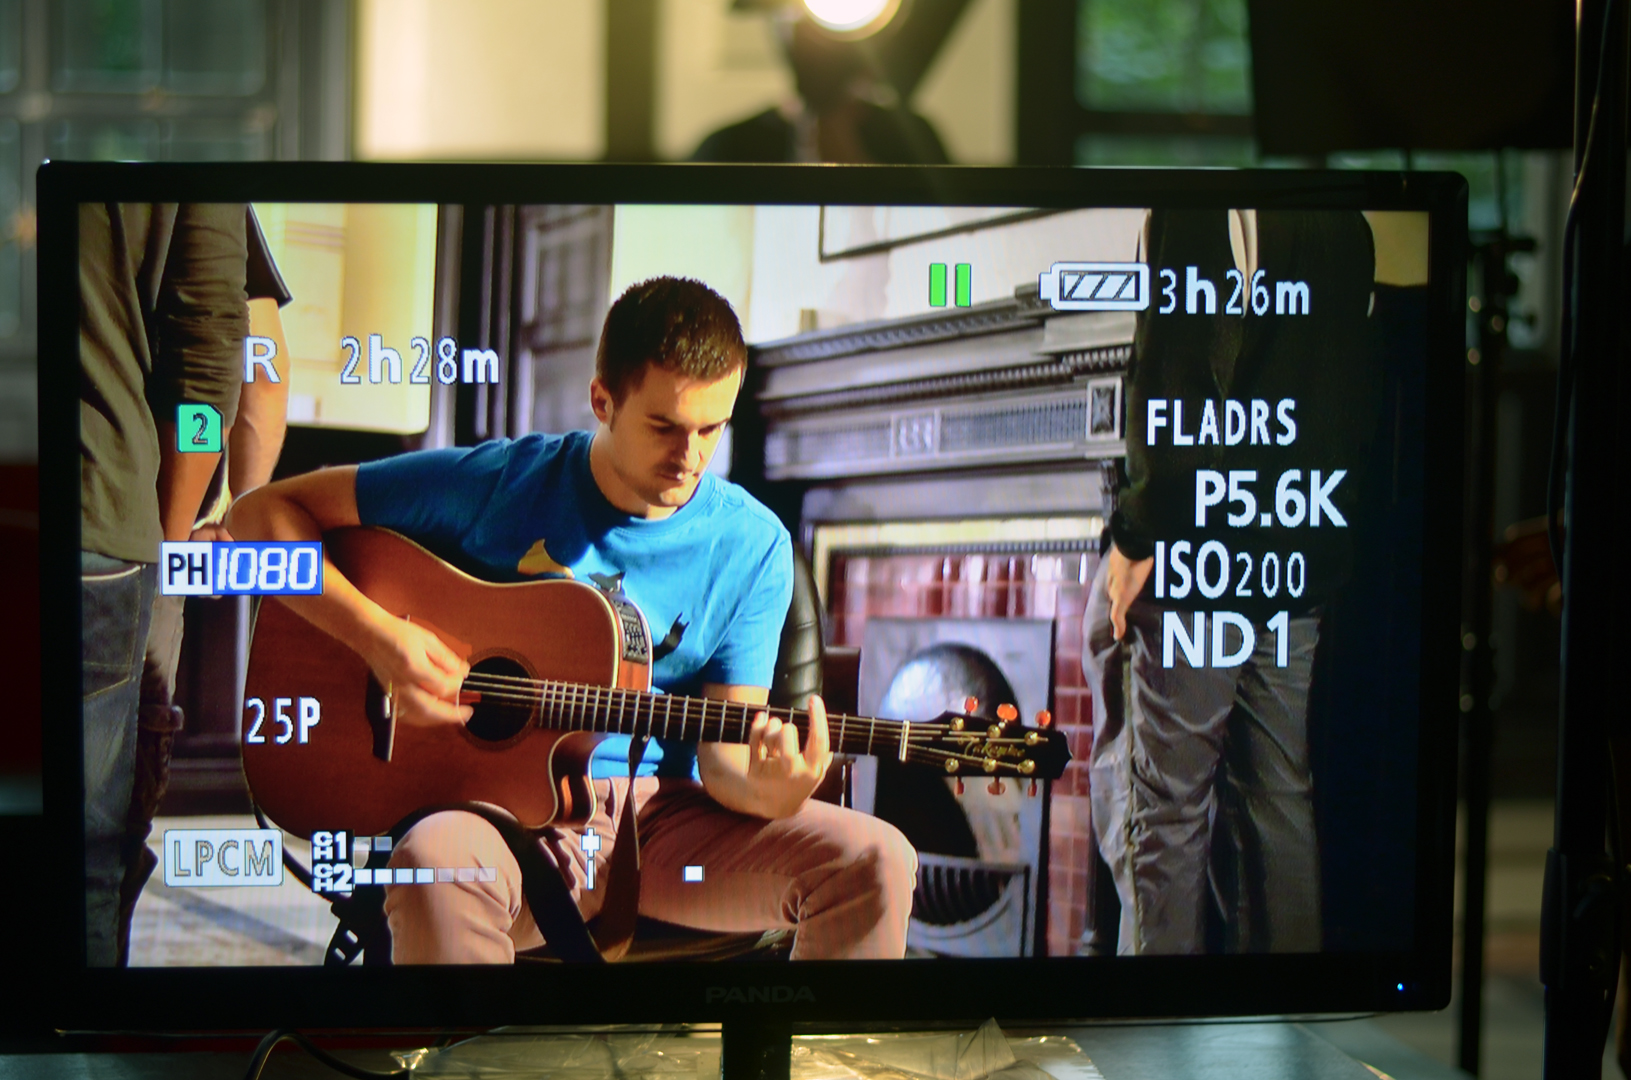 Work in Class is monitored during shooting to share composition and camera set up (photo Diarmuid)